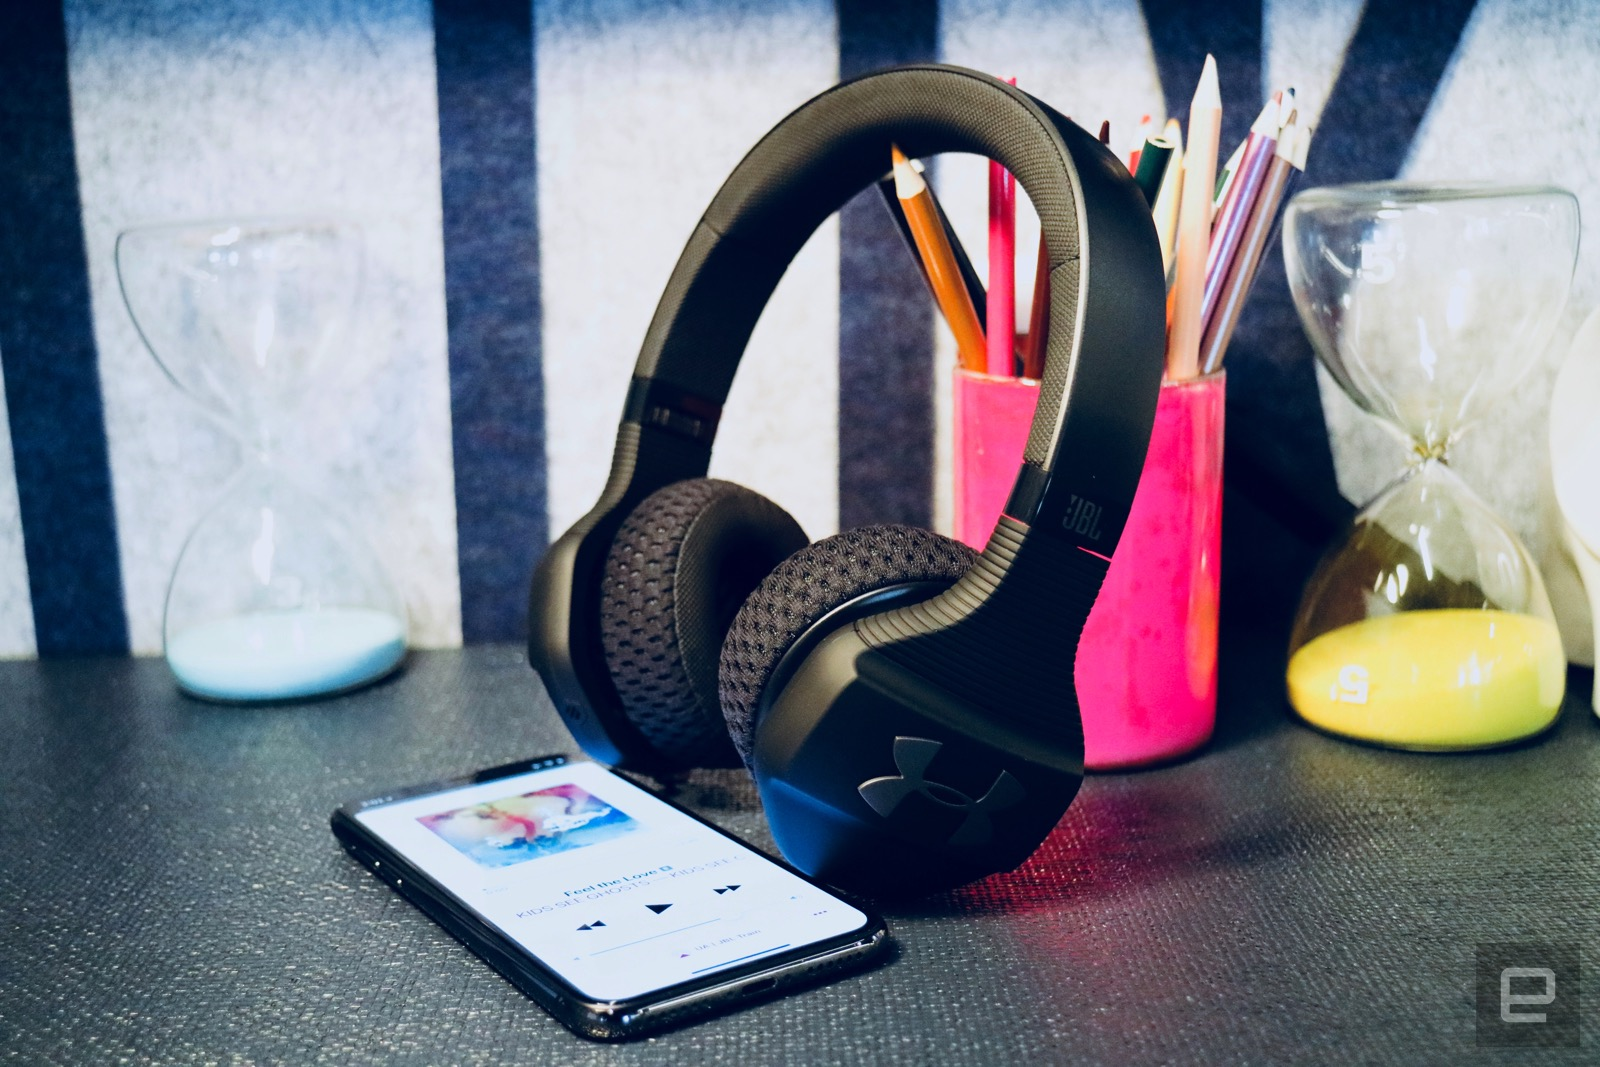 99ec2c8c05e Last month, Under Armour launched its Project Rock on-ear headphones, which  are built for intense workouts and were designed in collaboration with  Dwayne ...